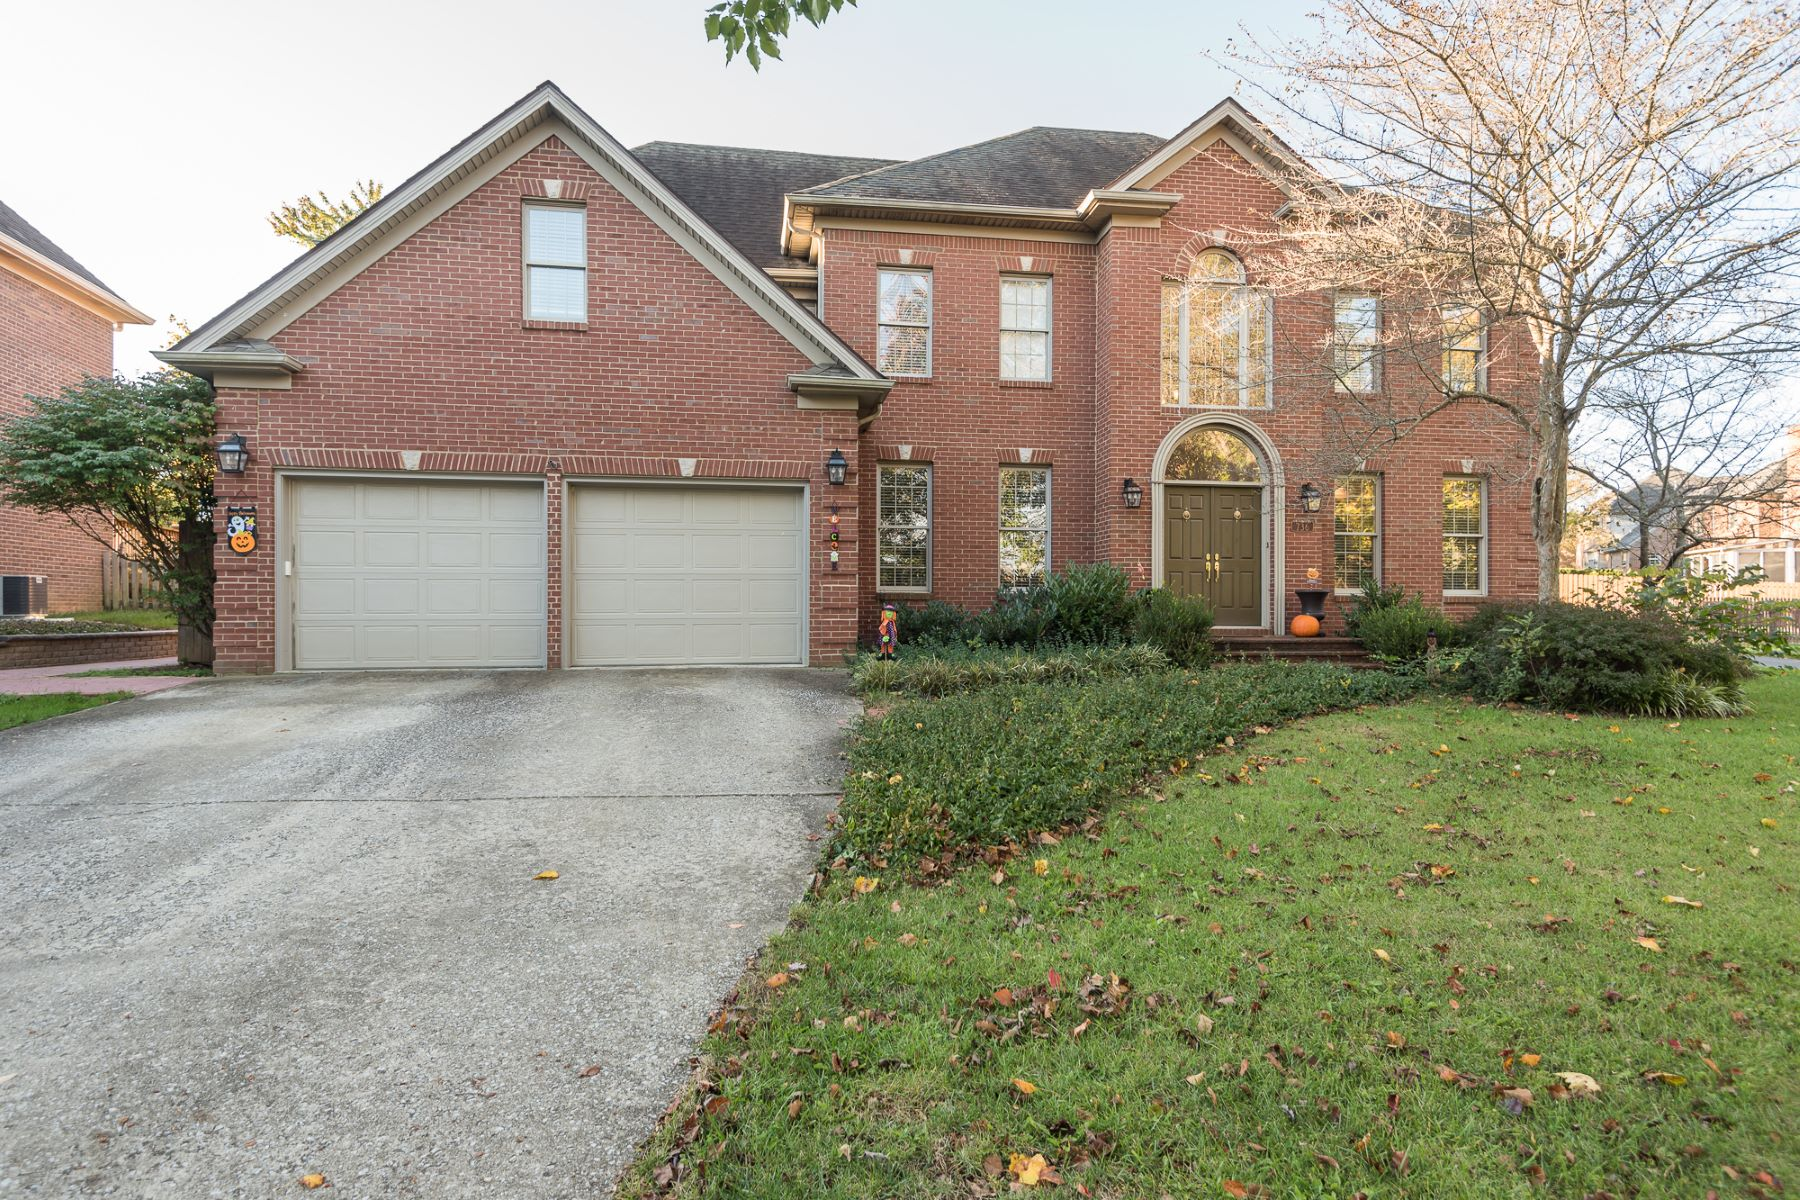 Single Family Home for Sale at 736 Andover Village Drive 736 Andover Village Drive Lexington, Kentucky 40509 United States